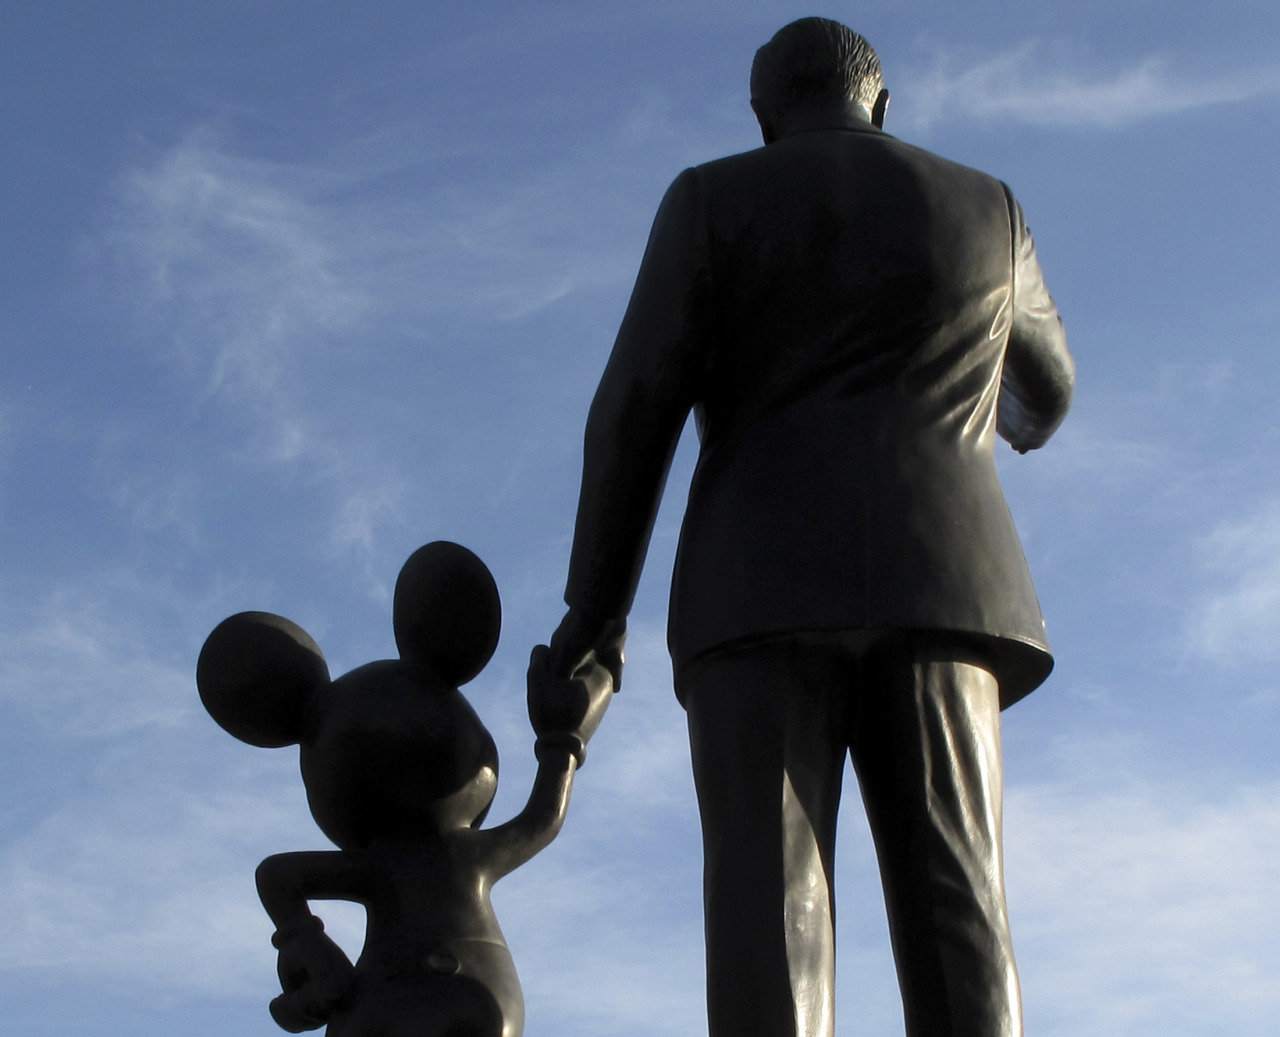 "Walt Disney Co, which reported record earnings in November, started an internal cost cutting review several weeks ago that may include layoffs at its studio and other units, three people with knowledge of the effort told Reuters. Disney, whose empire spans TV, film, merchandise and theme parks, is exploring cutbacks in jobs no longer needed because of improvements in technology, one of the people said. It is also looking at redundant operations that could be eliminated after a string of major acquisitions over the past few years, said the person, who did not want to be identified because Disney has not disclosed the internal review. Executives warned in November that the rising cost of sports rights and moribund home video sales will dampen growth. ""We are constantly looking at eliminating redundancies and creating greater efficiencies, especially with the rapid rise in new technology,"" said Disney spokeswoman Zenia Mucha. EXCLUSIVE: Disney looks for cost savings, ponders layoffs - sources"